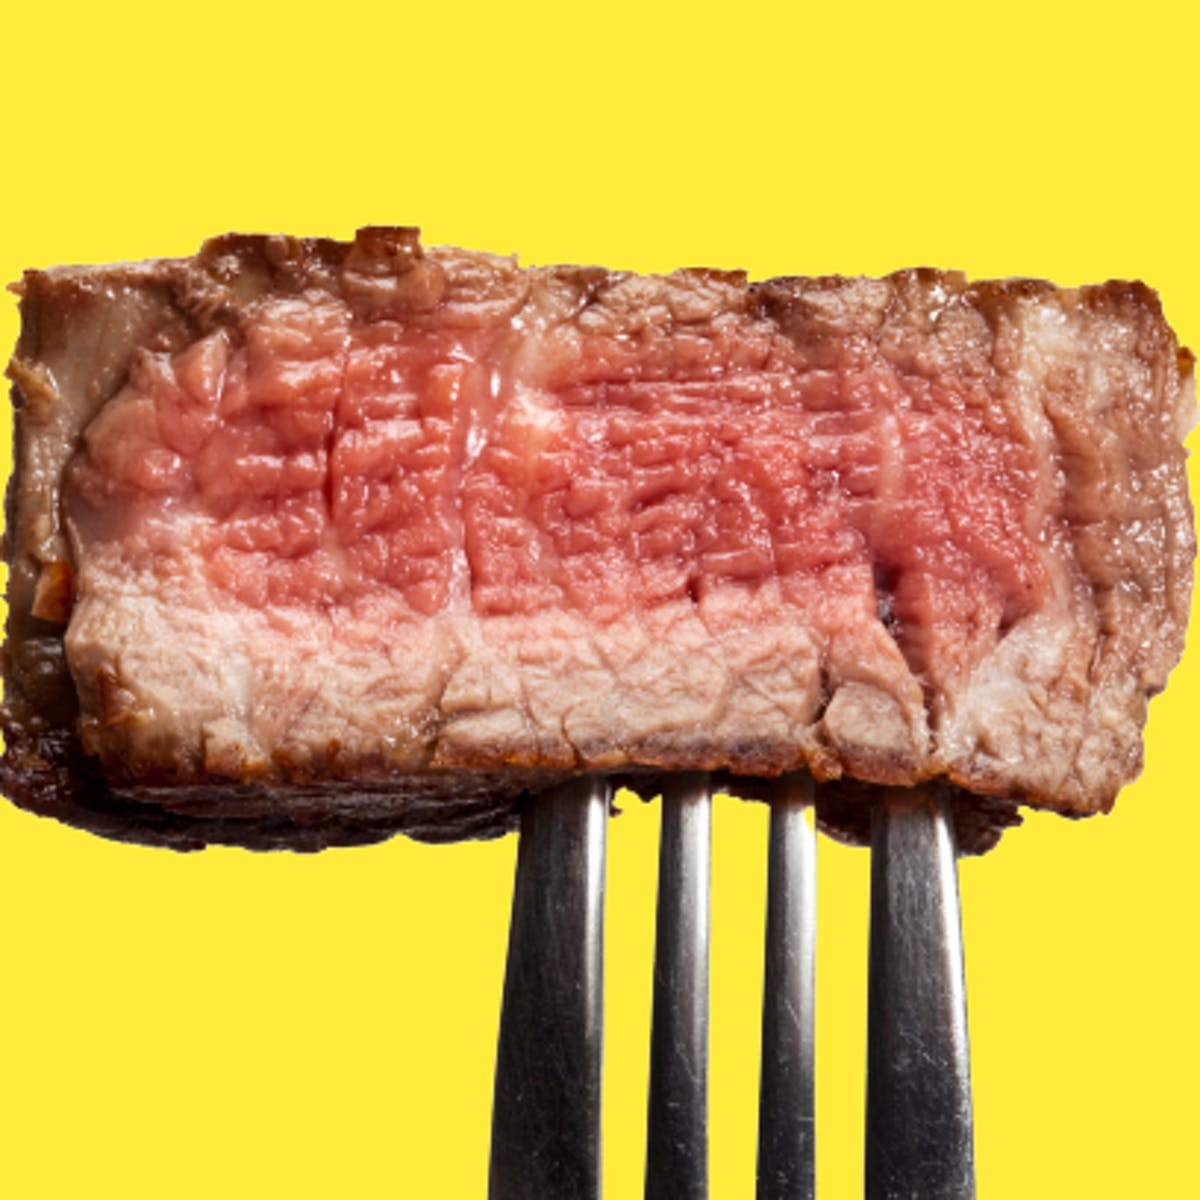 The truth about meat's link to health: slicing off facts from fiction